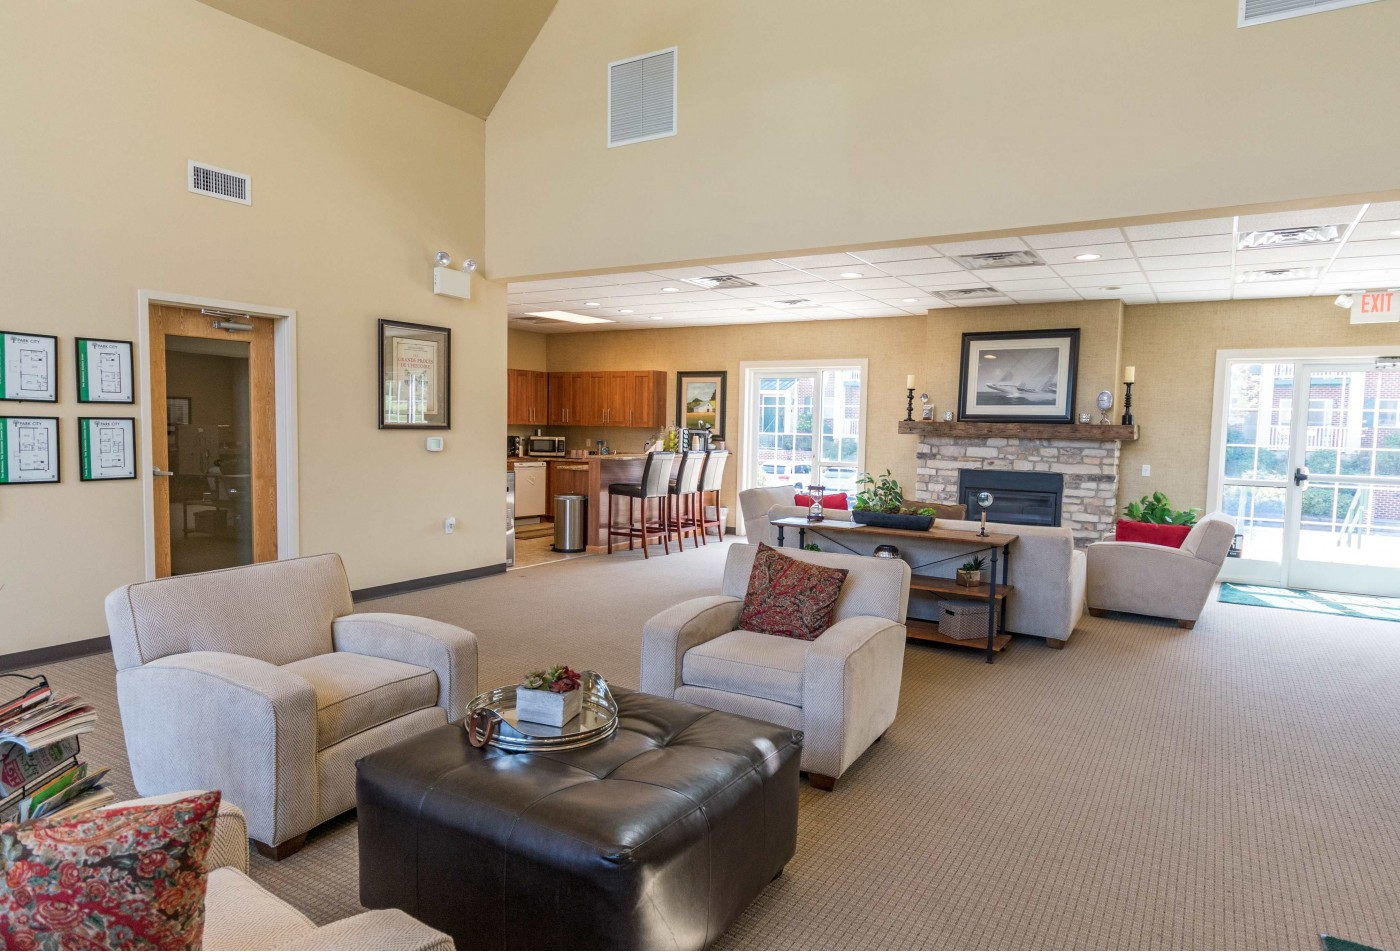 Swimming Pool | Apartment Homes in Lancaster, PA | Park City Apartments